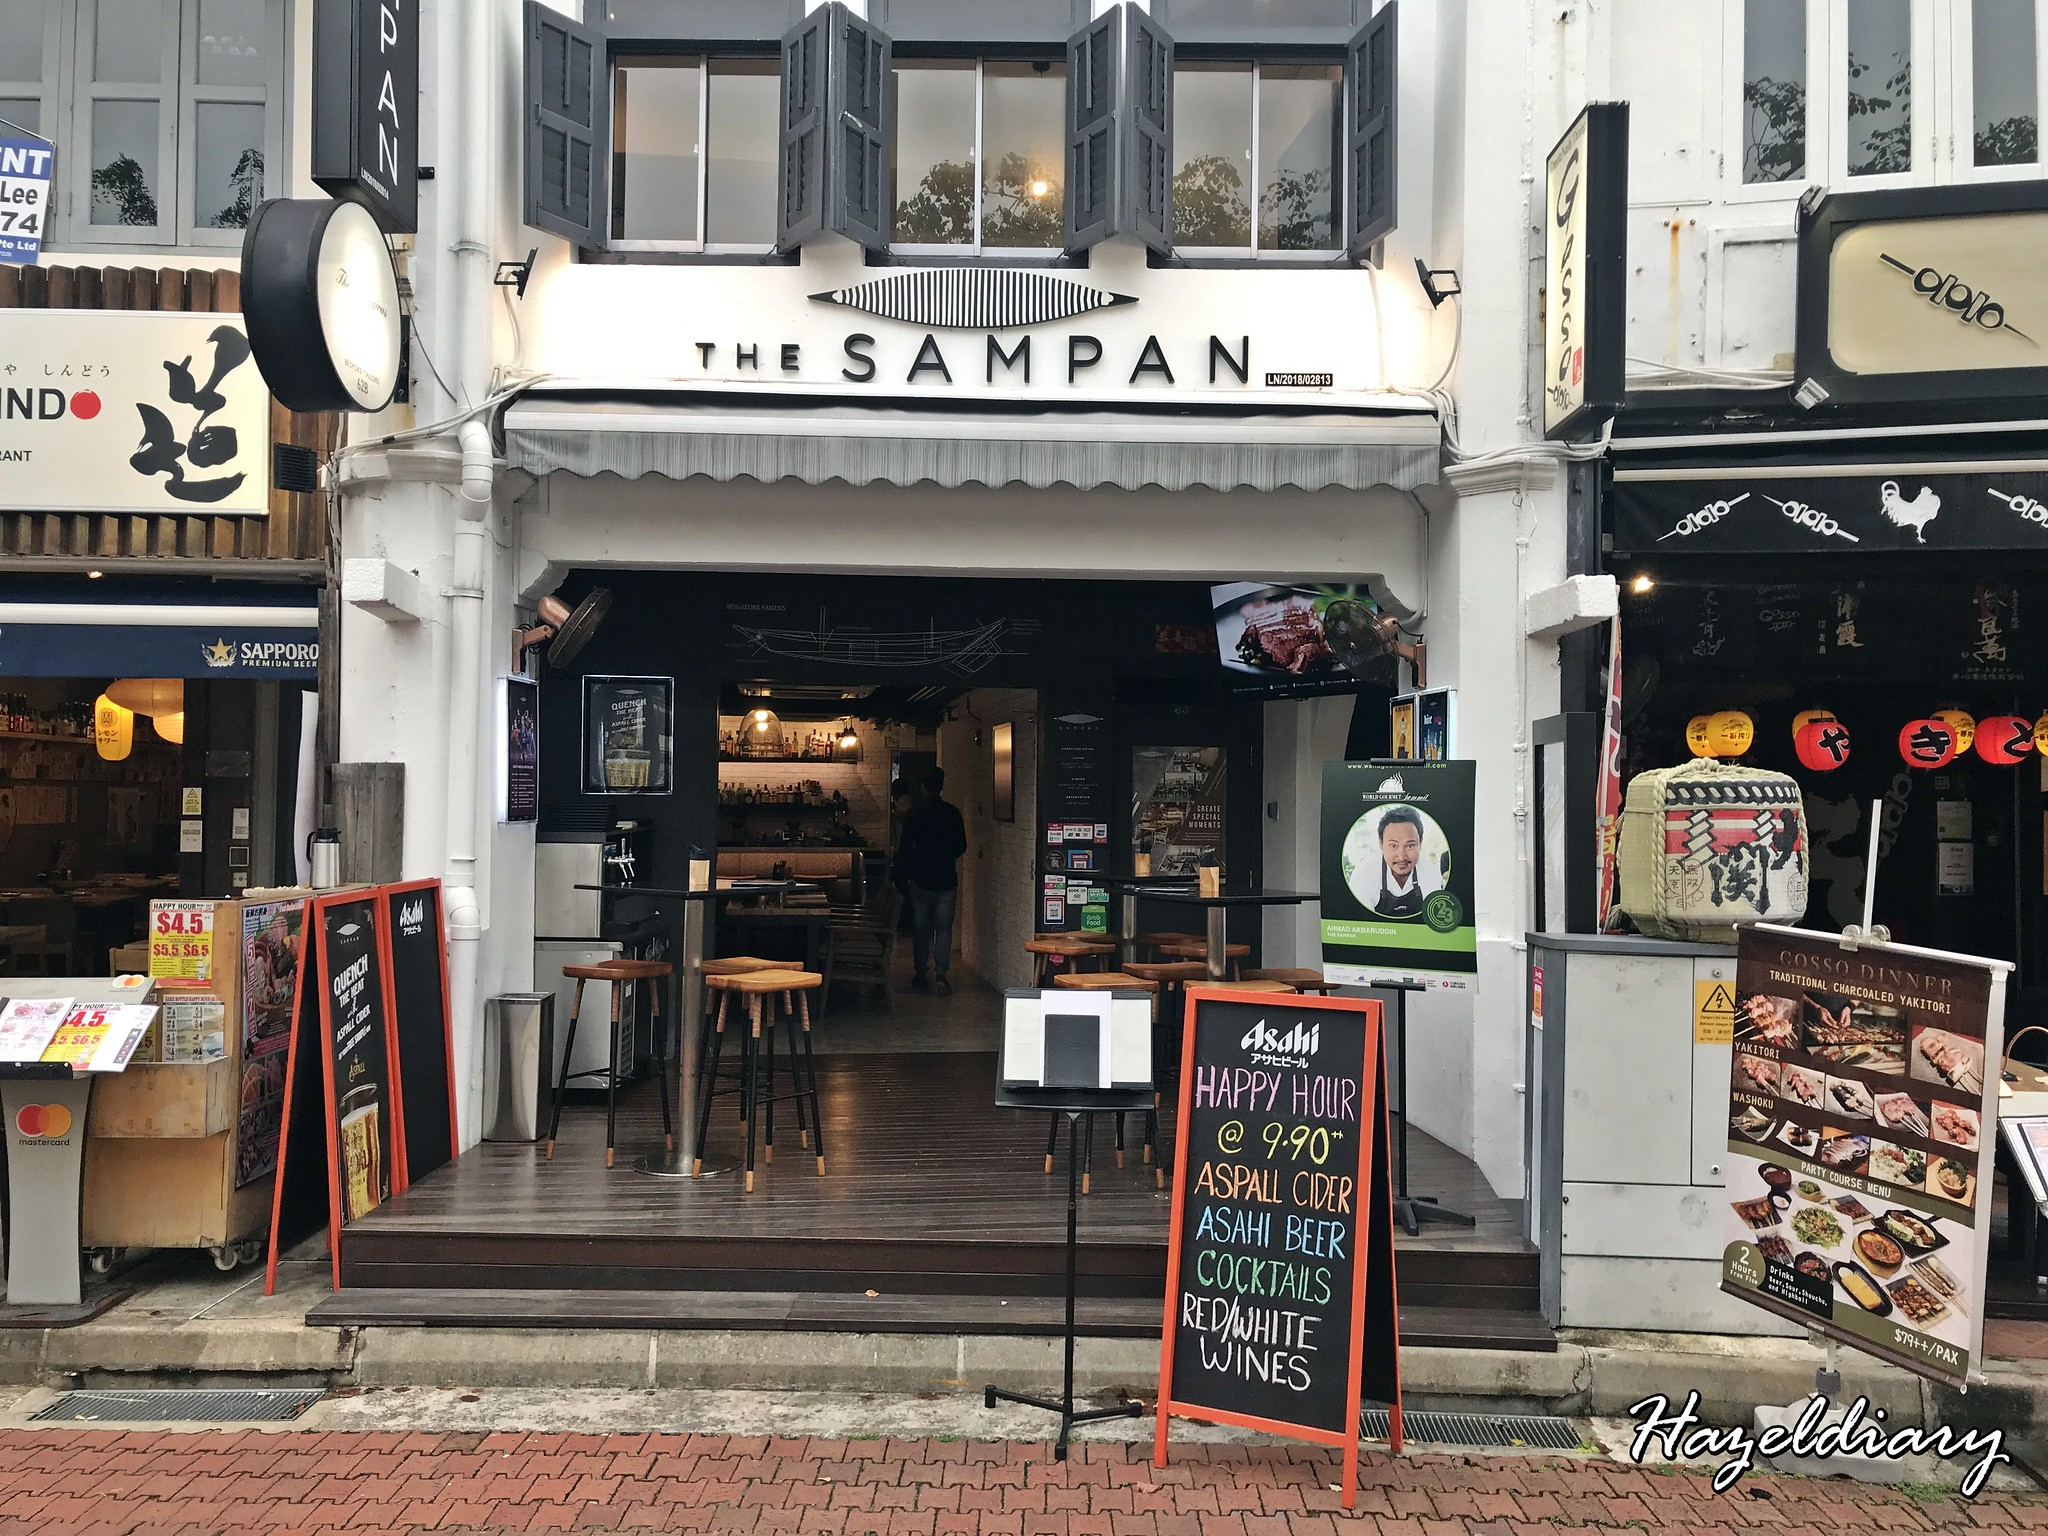 [SG EATS] The Sampan – Three-Storey Restaurant & Bar At Boay Quay